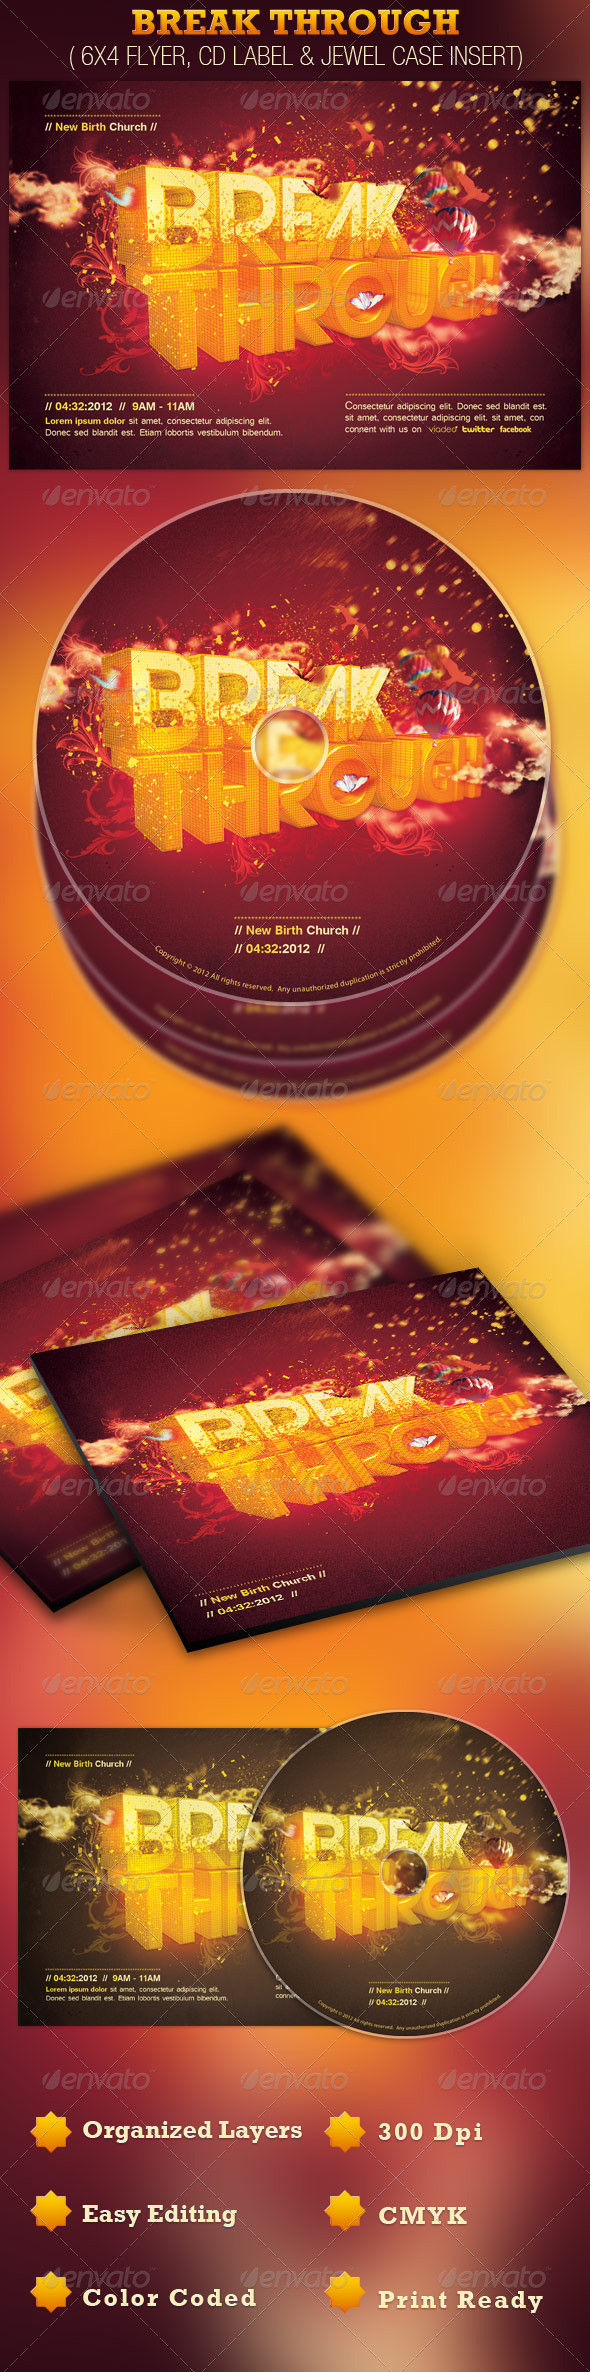 GraphicRiver Break Through Church Flyer and CD Template 2062563